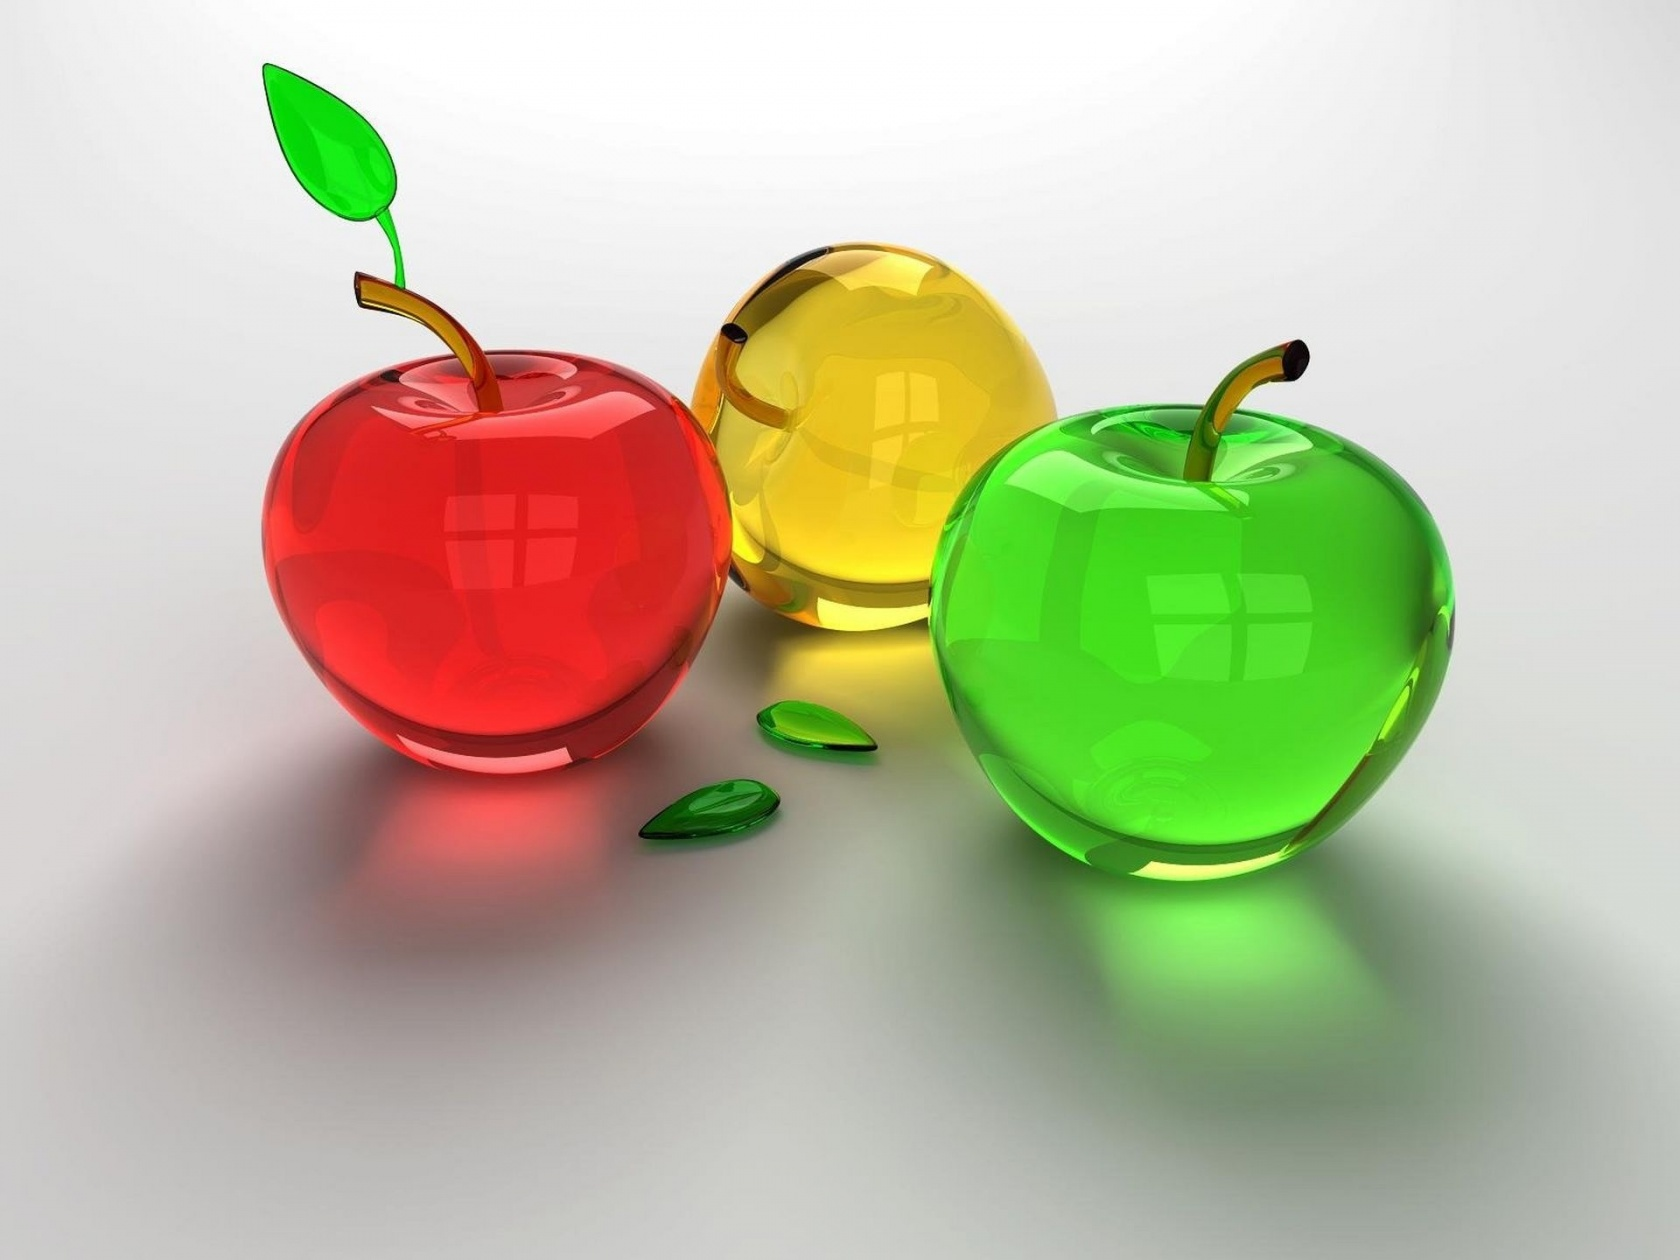 Three Colored Apples